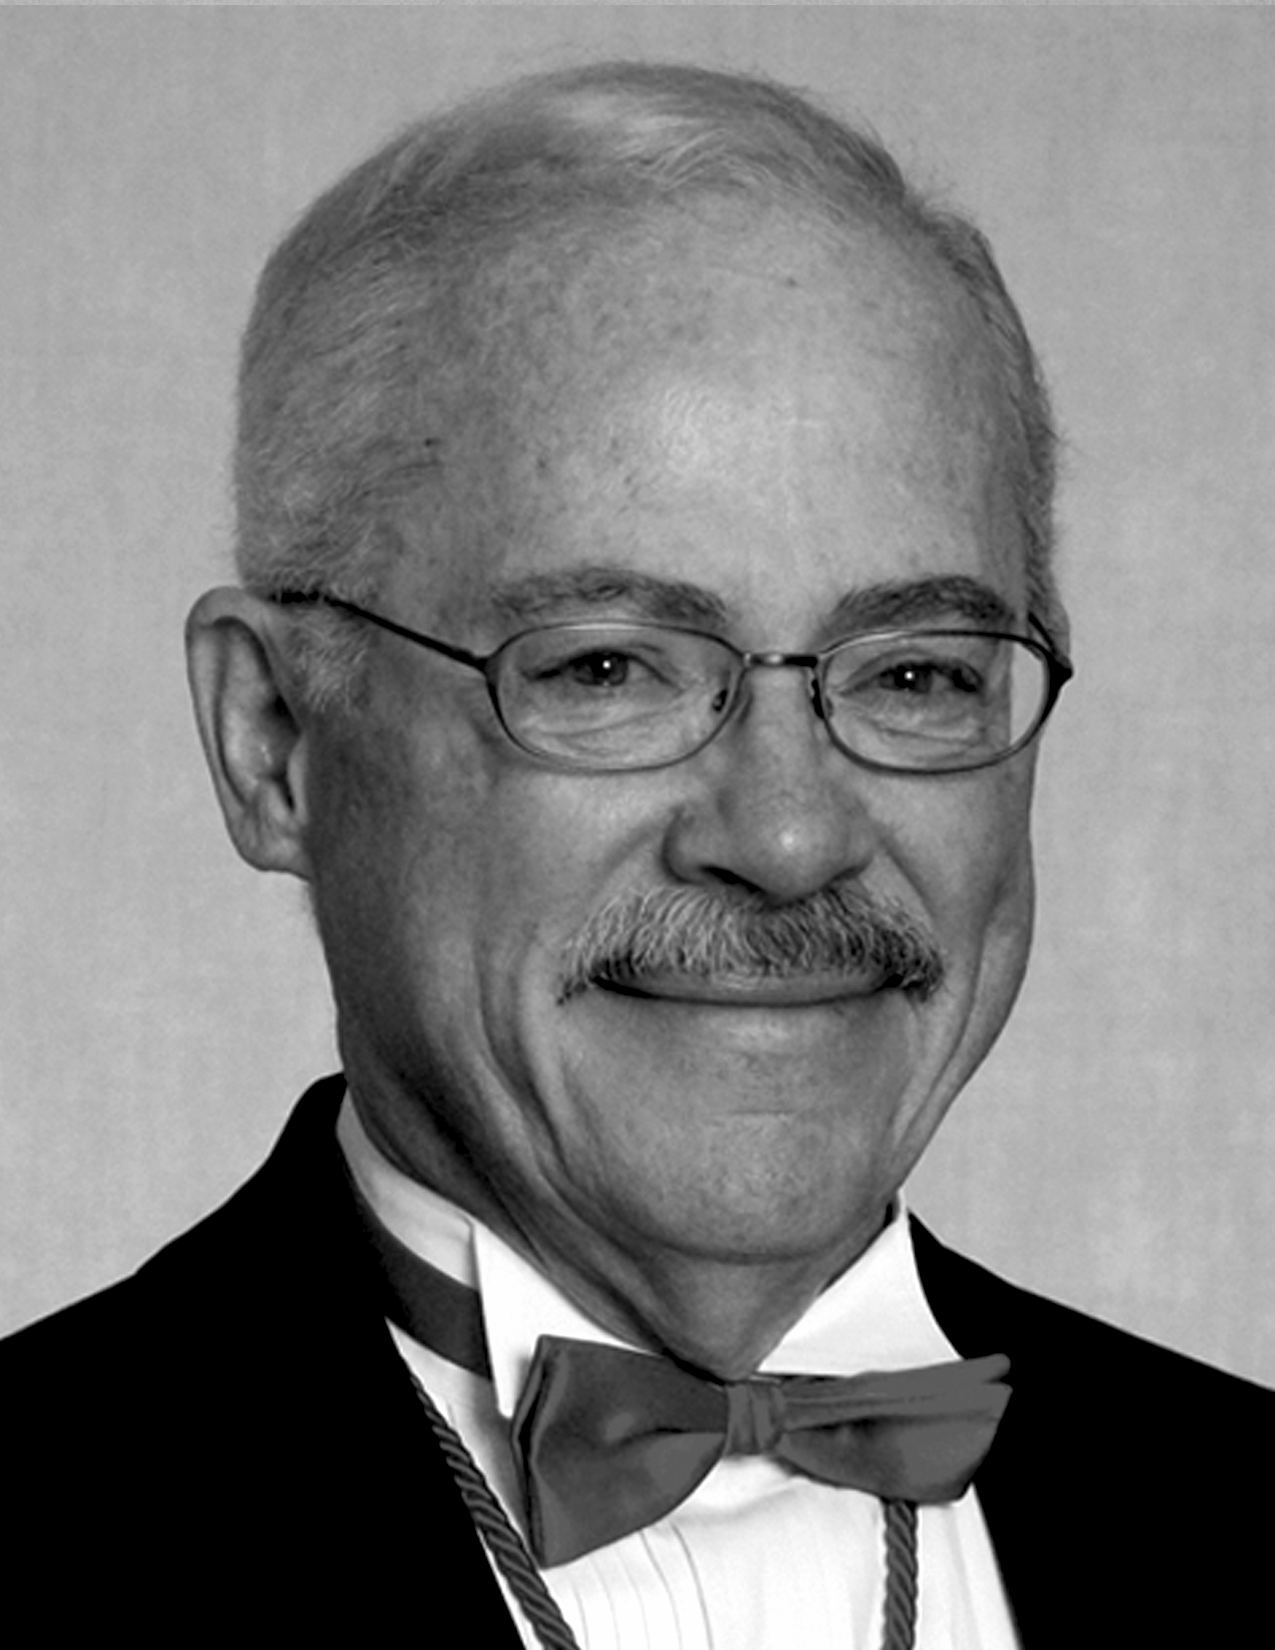 Honorable Bob Barr